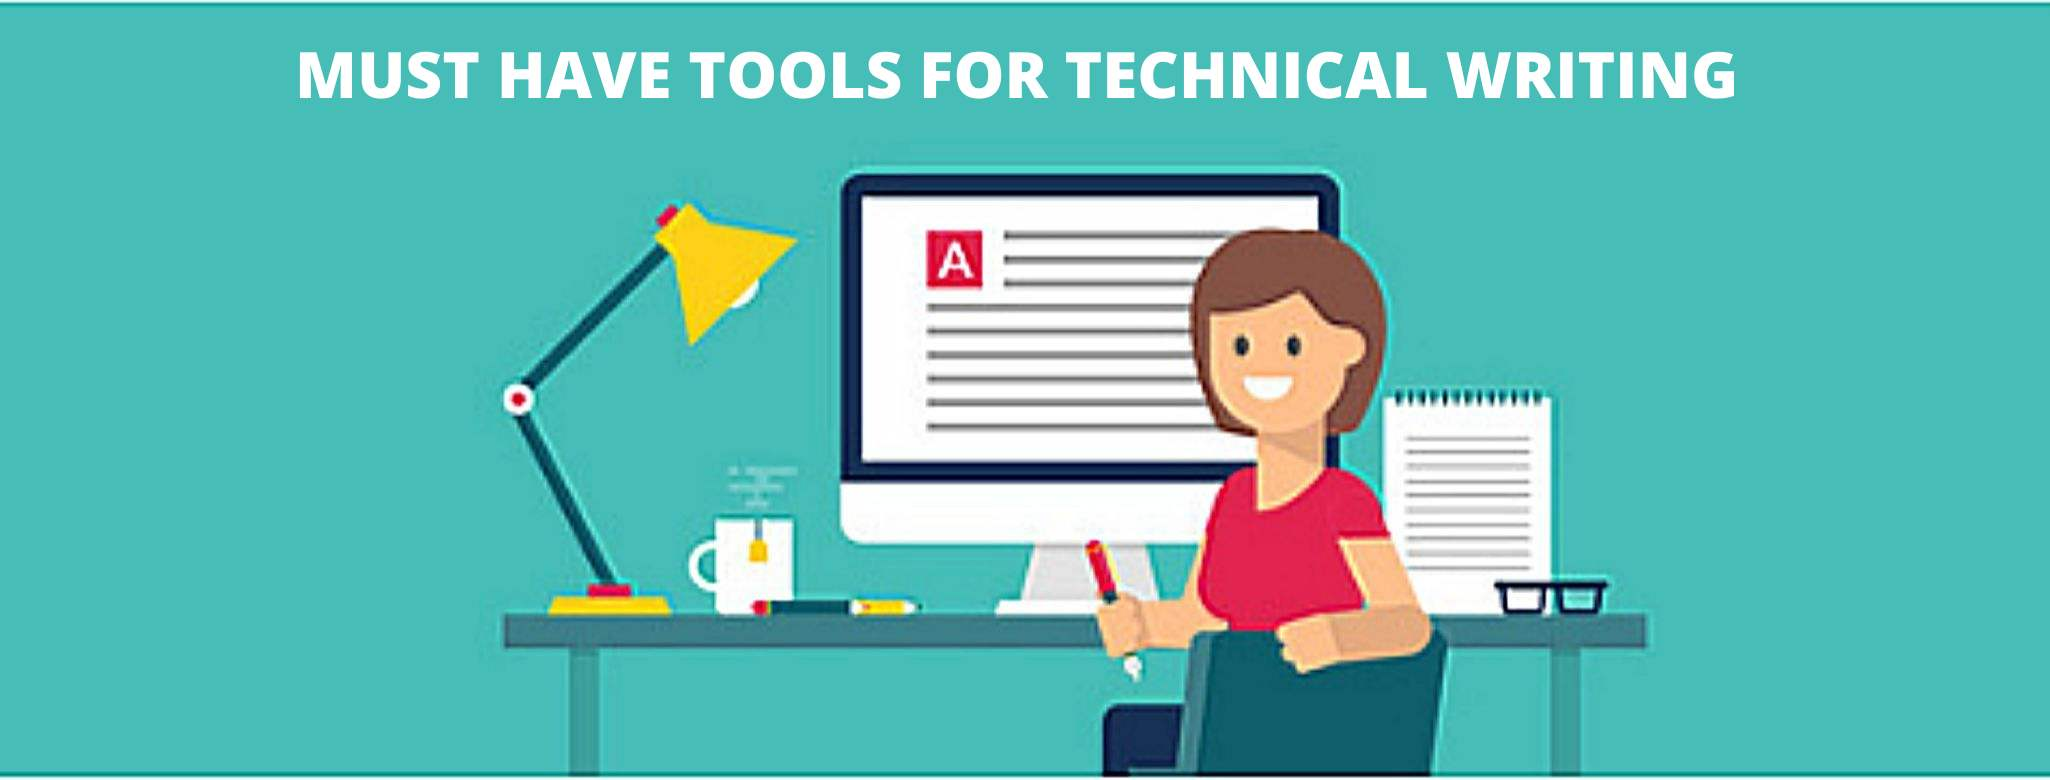 The image describes the article on the most popular technical writing tools